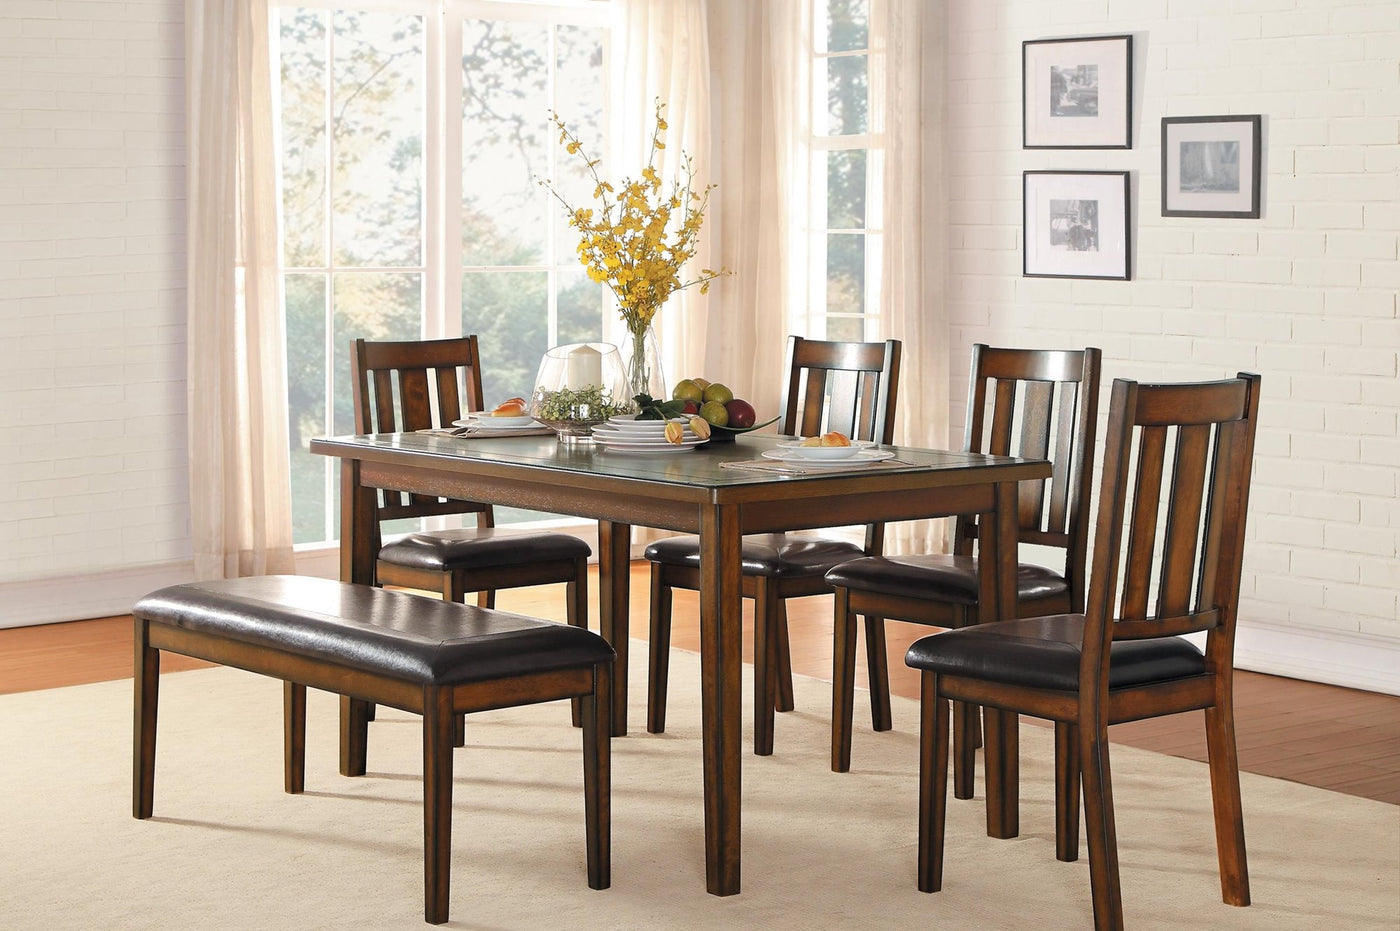 Homelegance Delmar 6PC Dining Set Table, 4 Chair, Bench In Brown